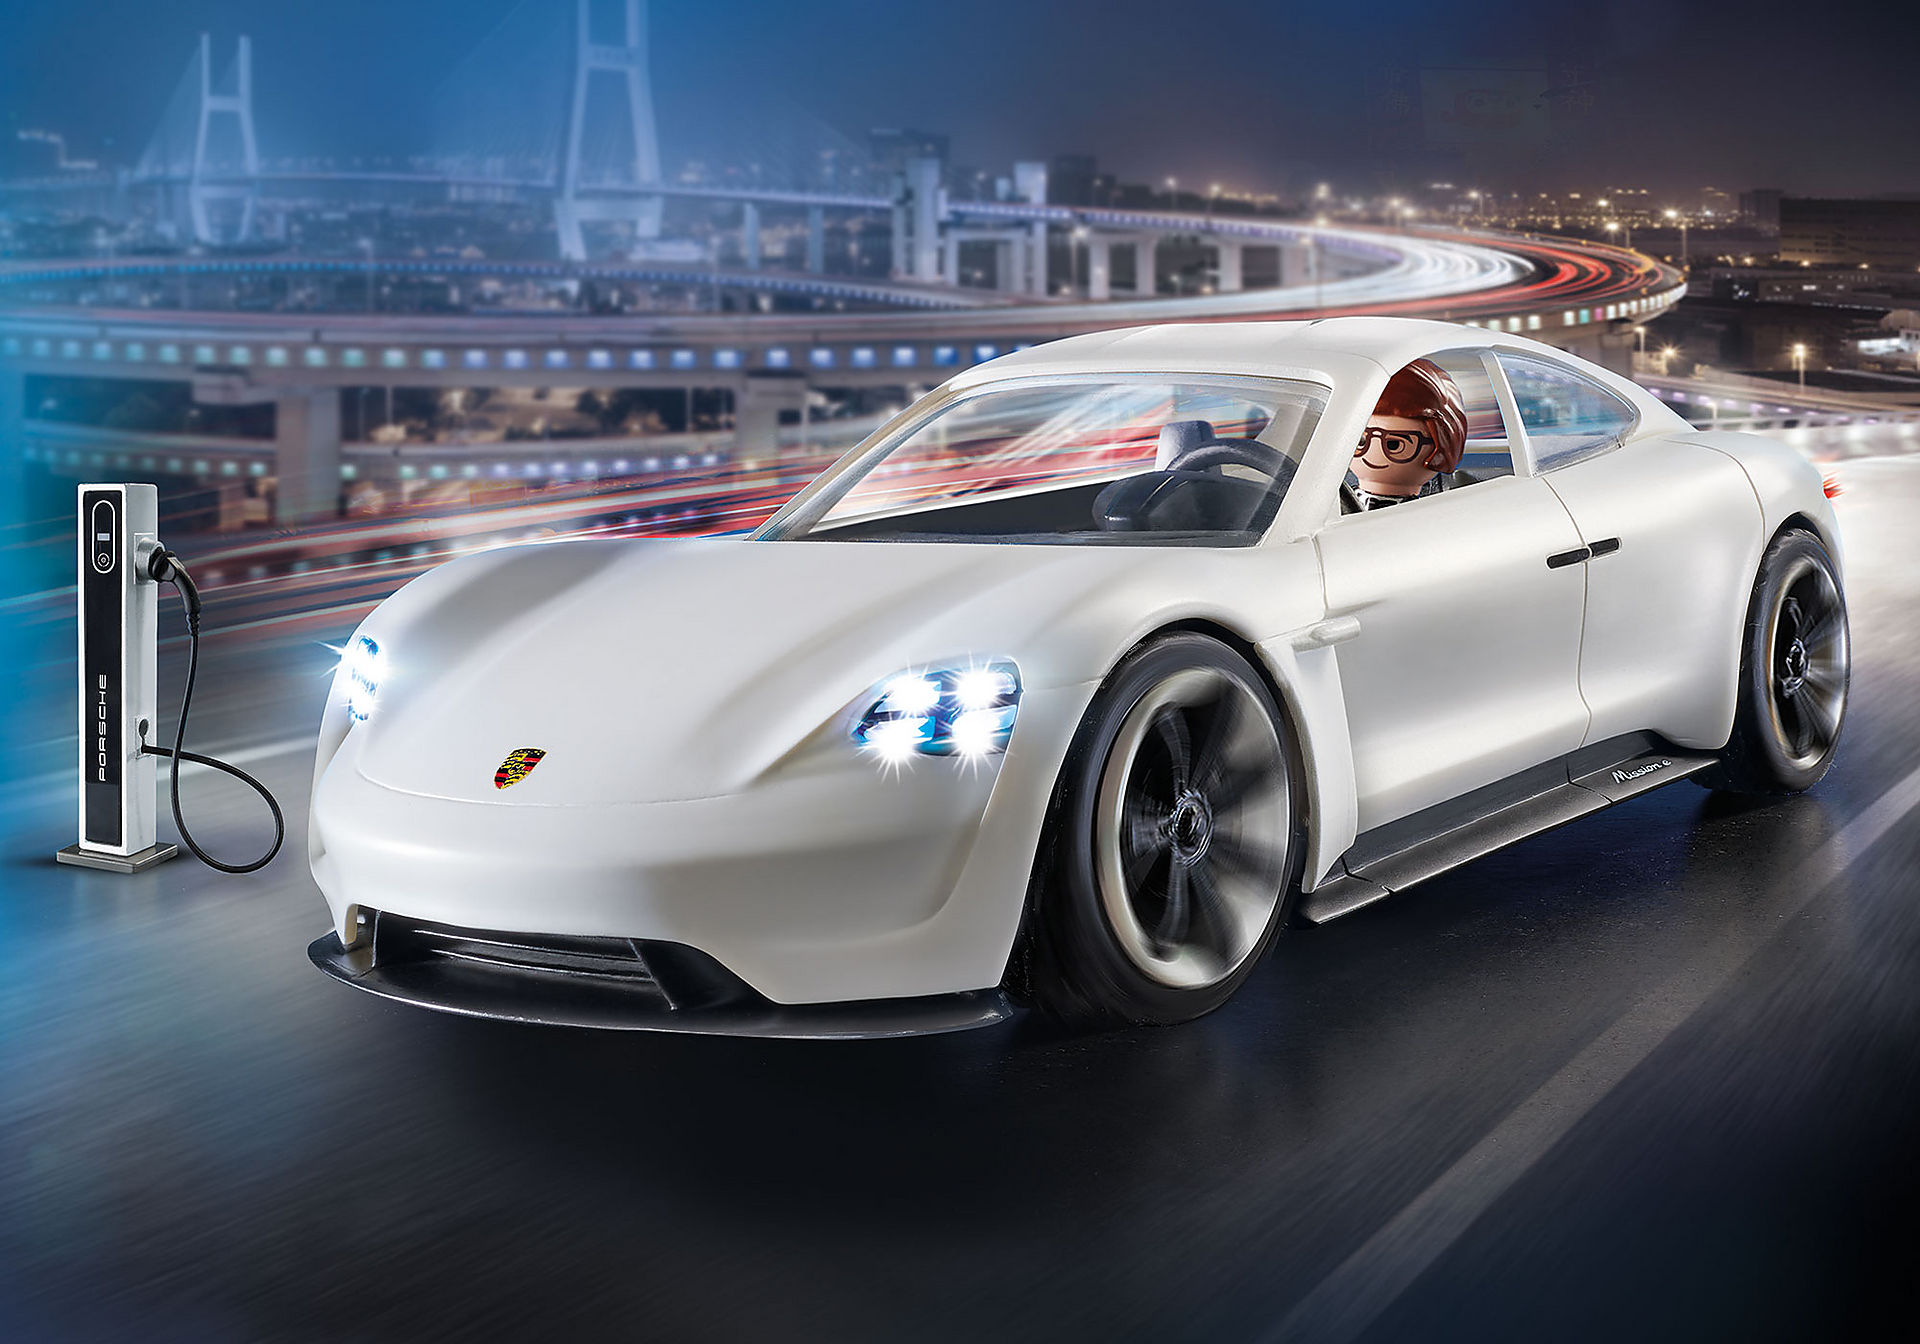 70078 PLAYMOBIL: THE MOVIE Rex Dasher's Porsche Mission E zoom image1